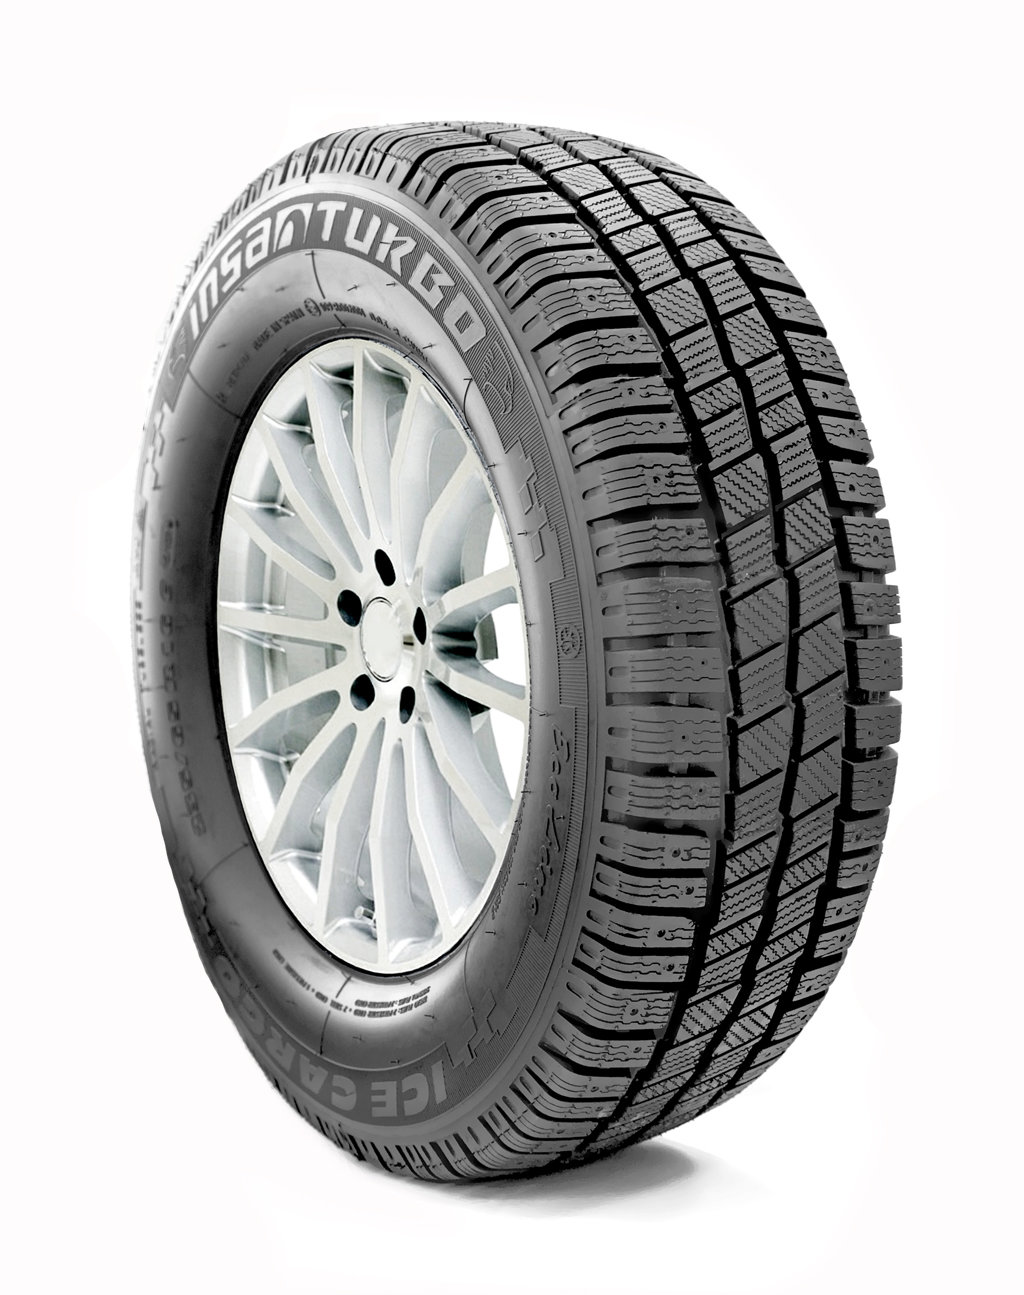 insa-turbo-ice-cargo-215-65r16106r